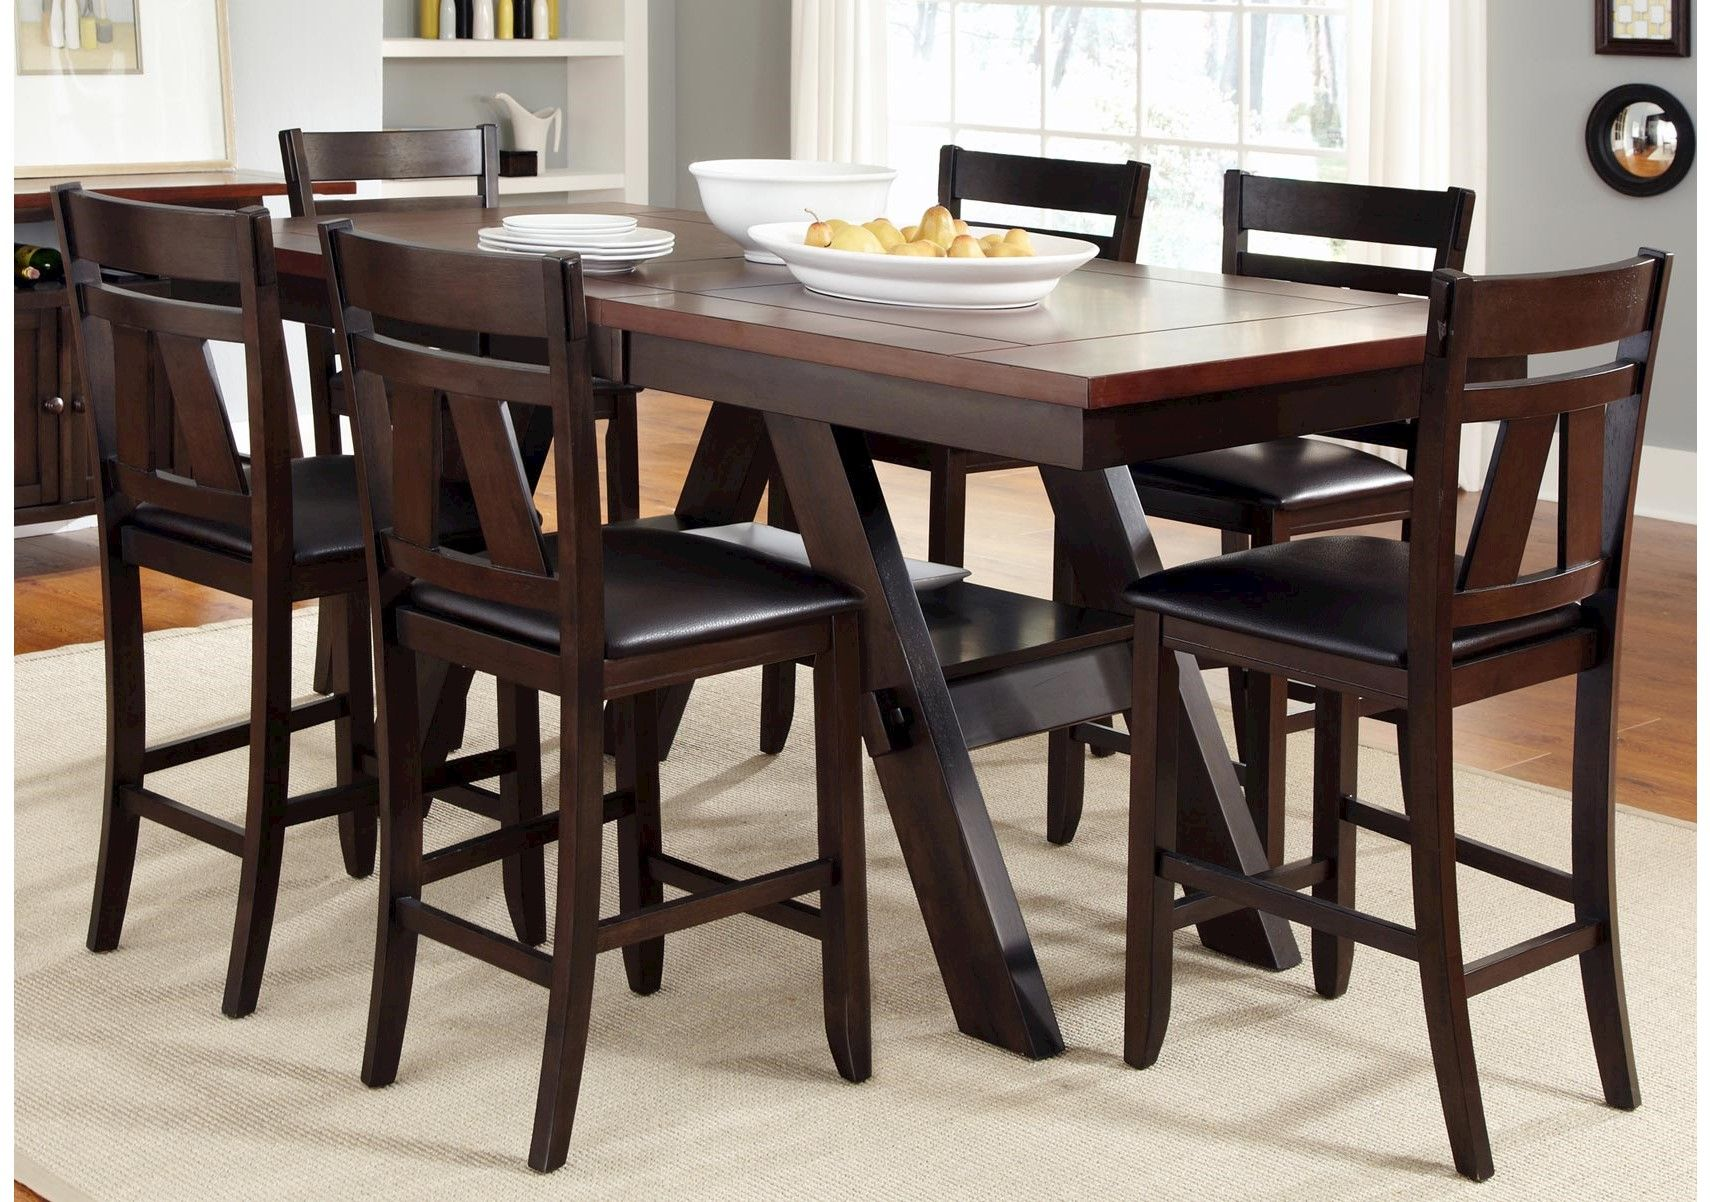 Lacks Lawson 7 Pc Counter Height Dining Set Liberty Furniture Kitchen Table Settings Counter Height Kitchen Table